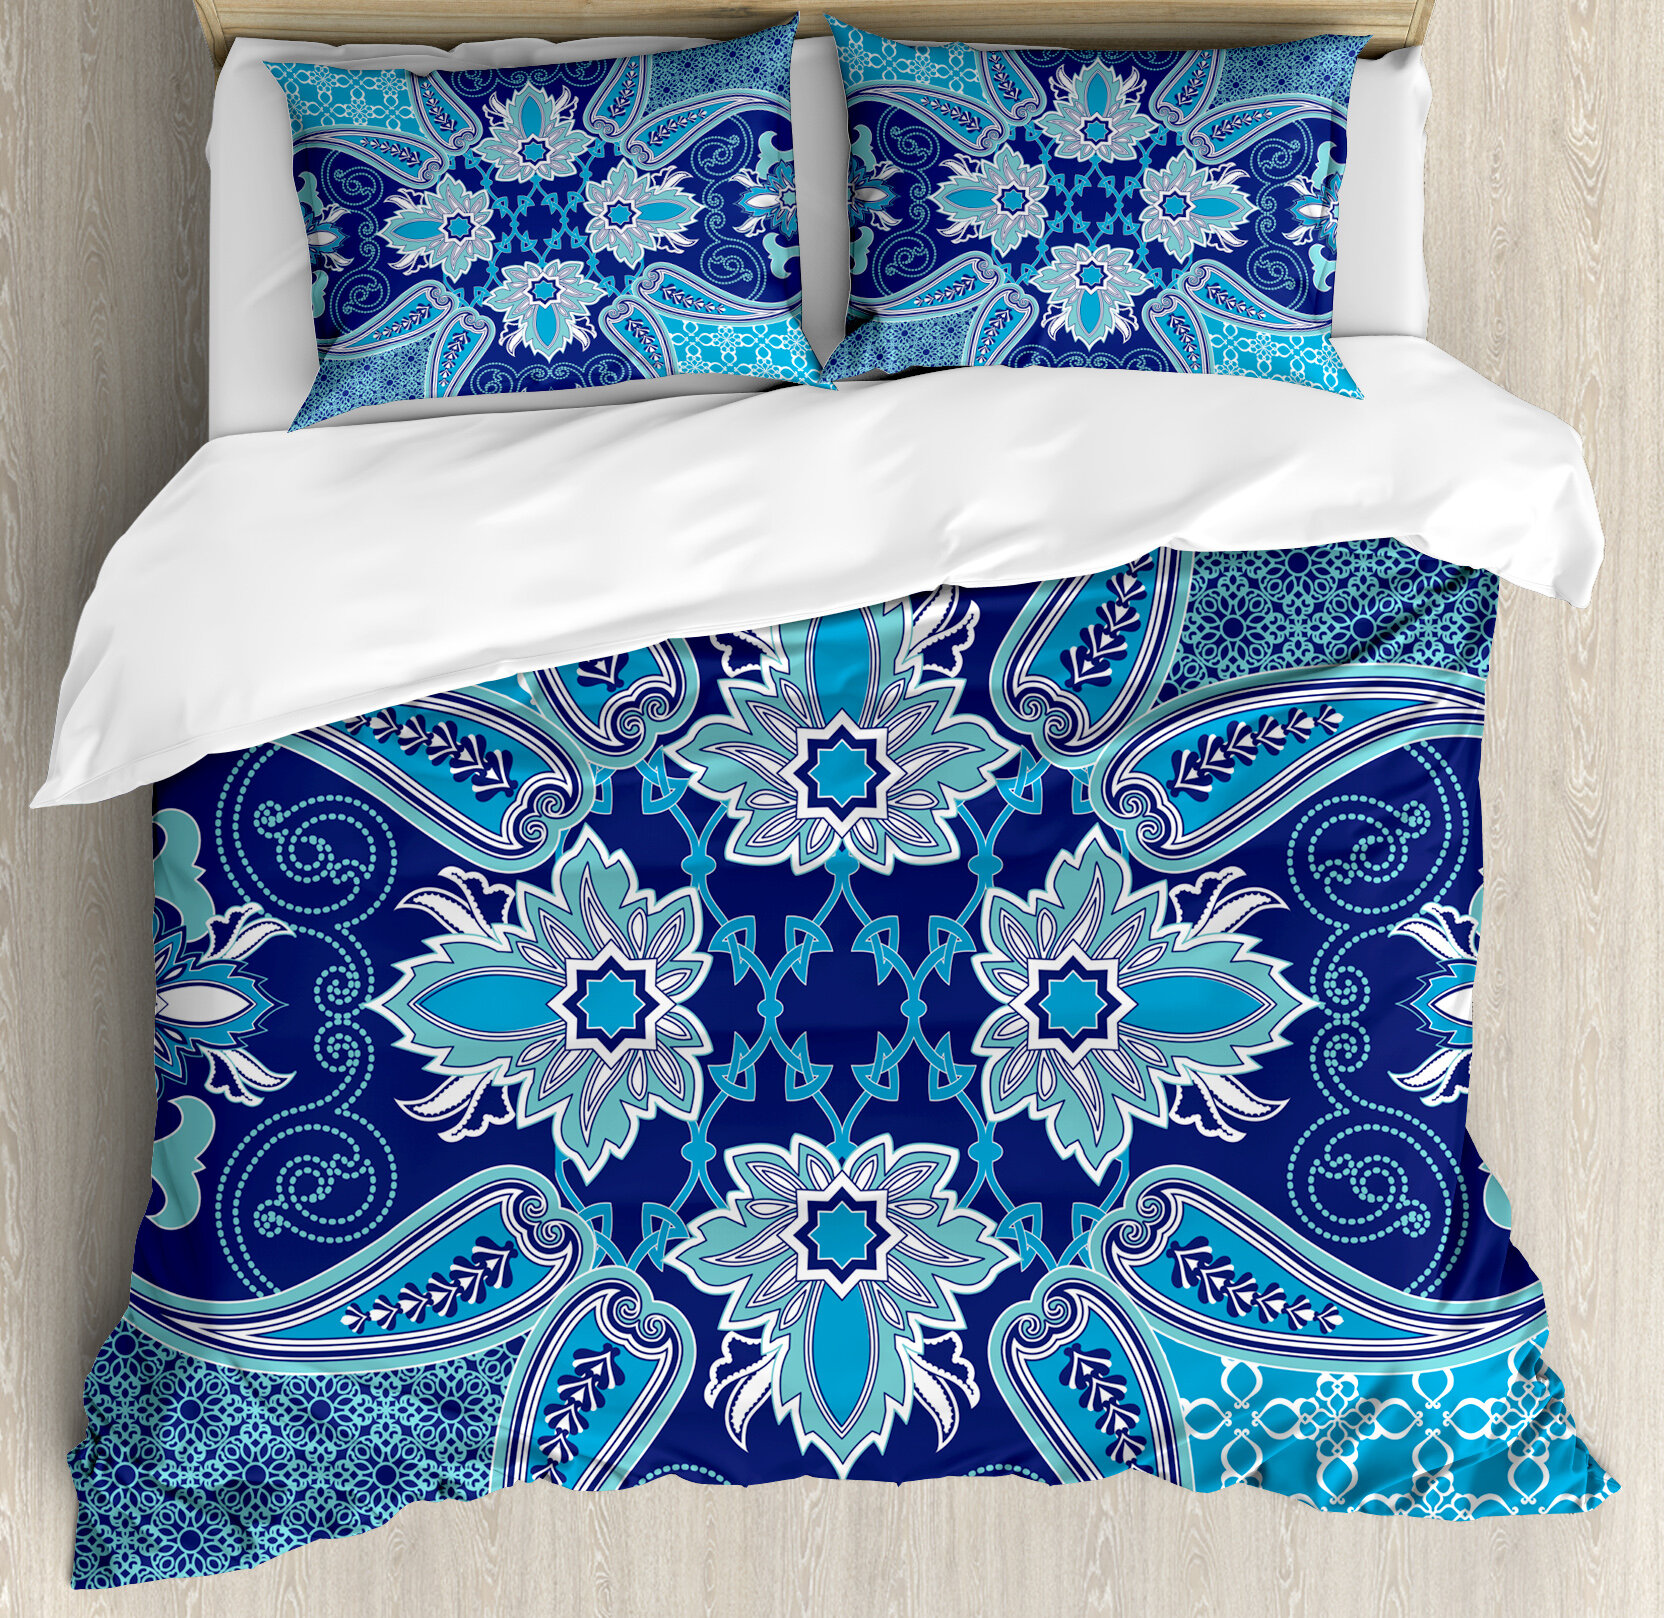 large designs duvet covers cover carousel cloud moroccan tile gray